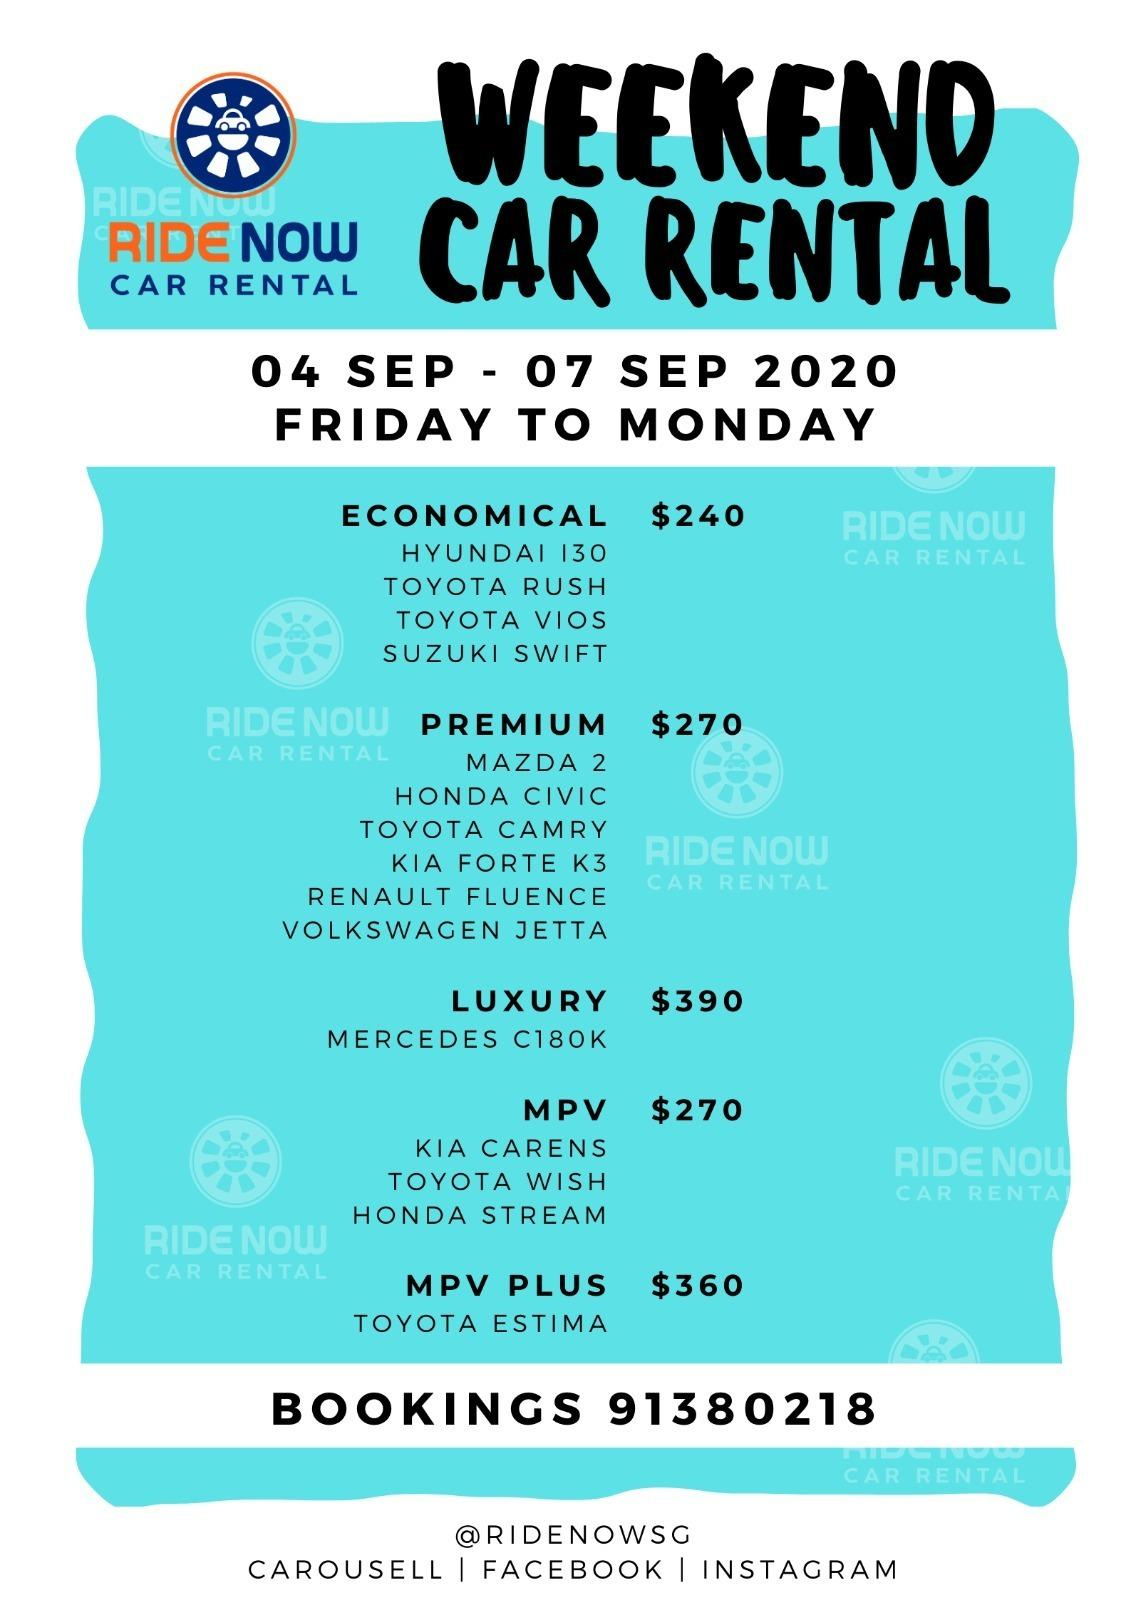 Weekend Rentals! Promotional Prices for September! Hatchback / Sedan / MPV / Luxury - Cheap prices and P Plate Friendly